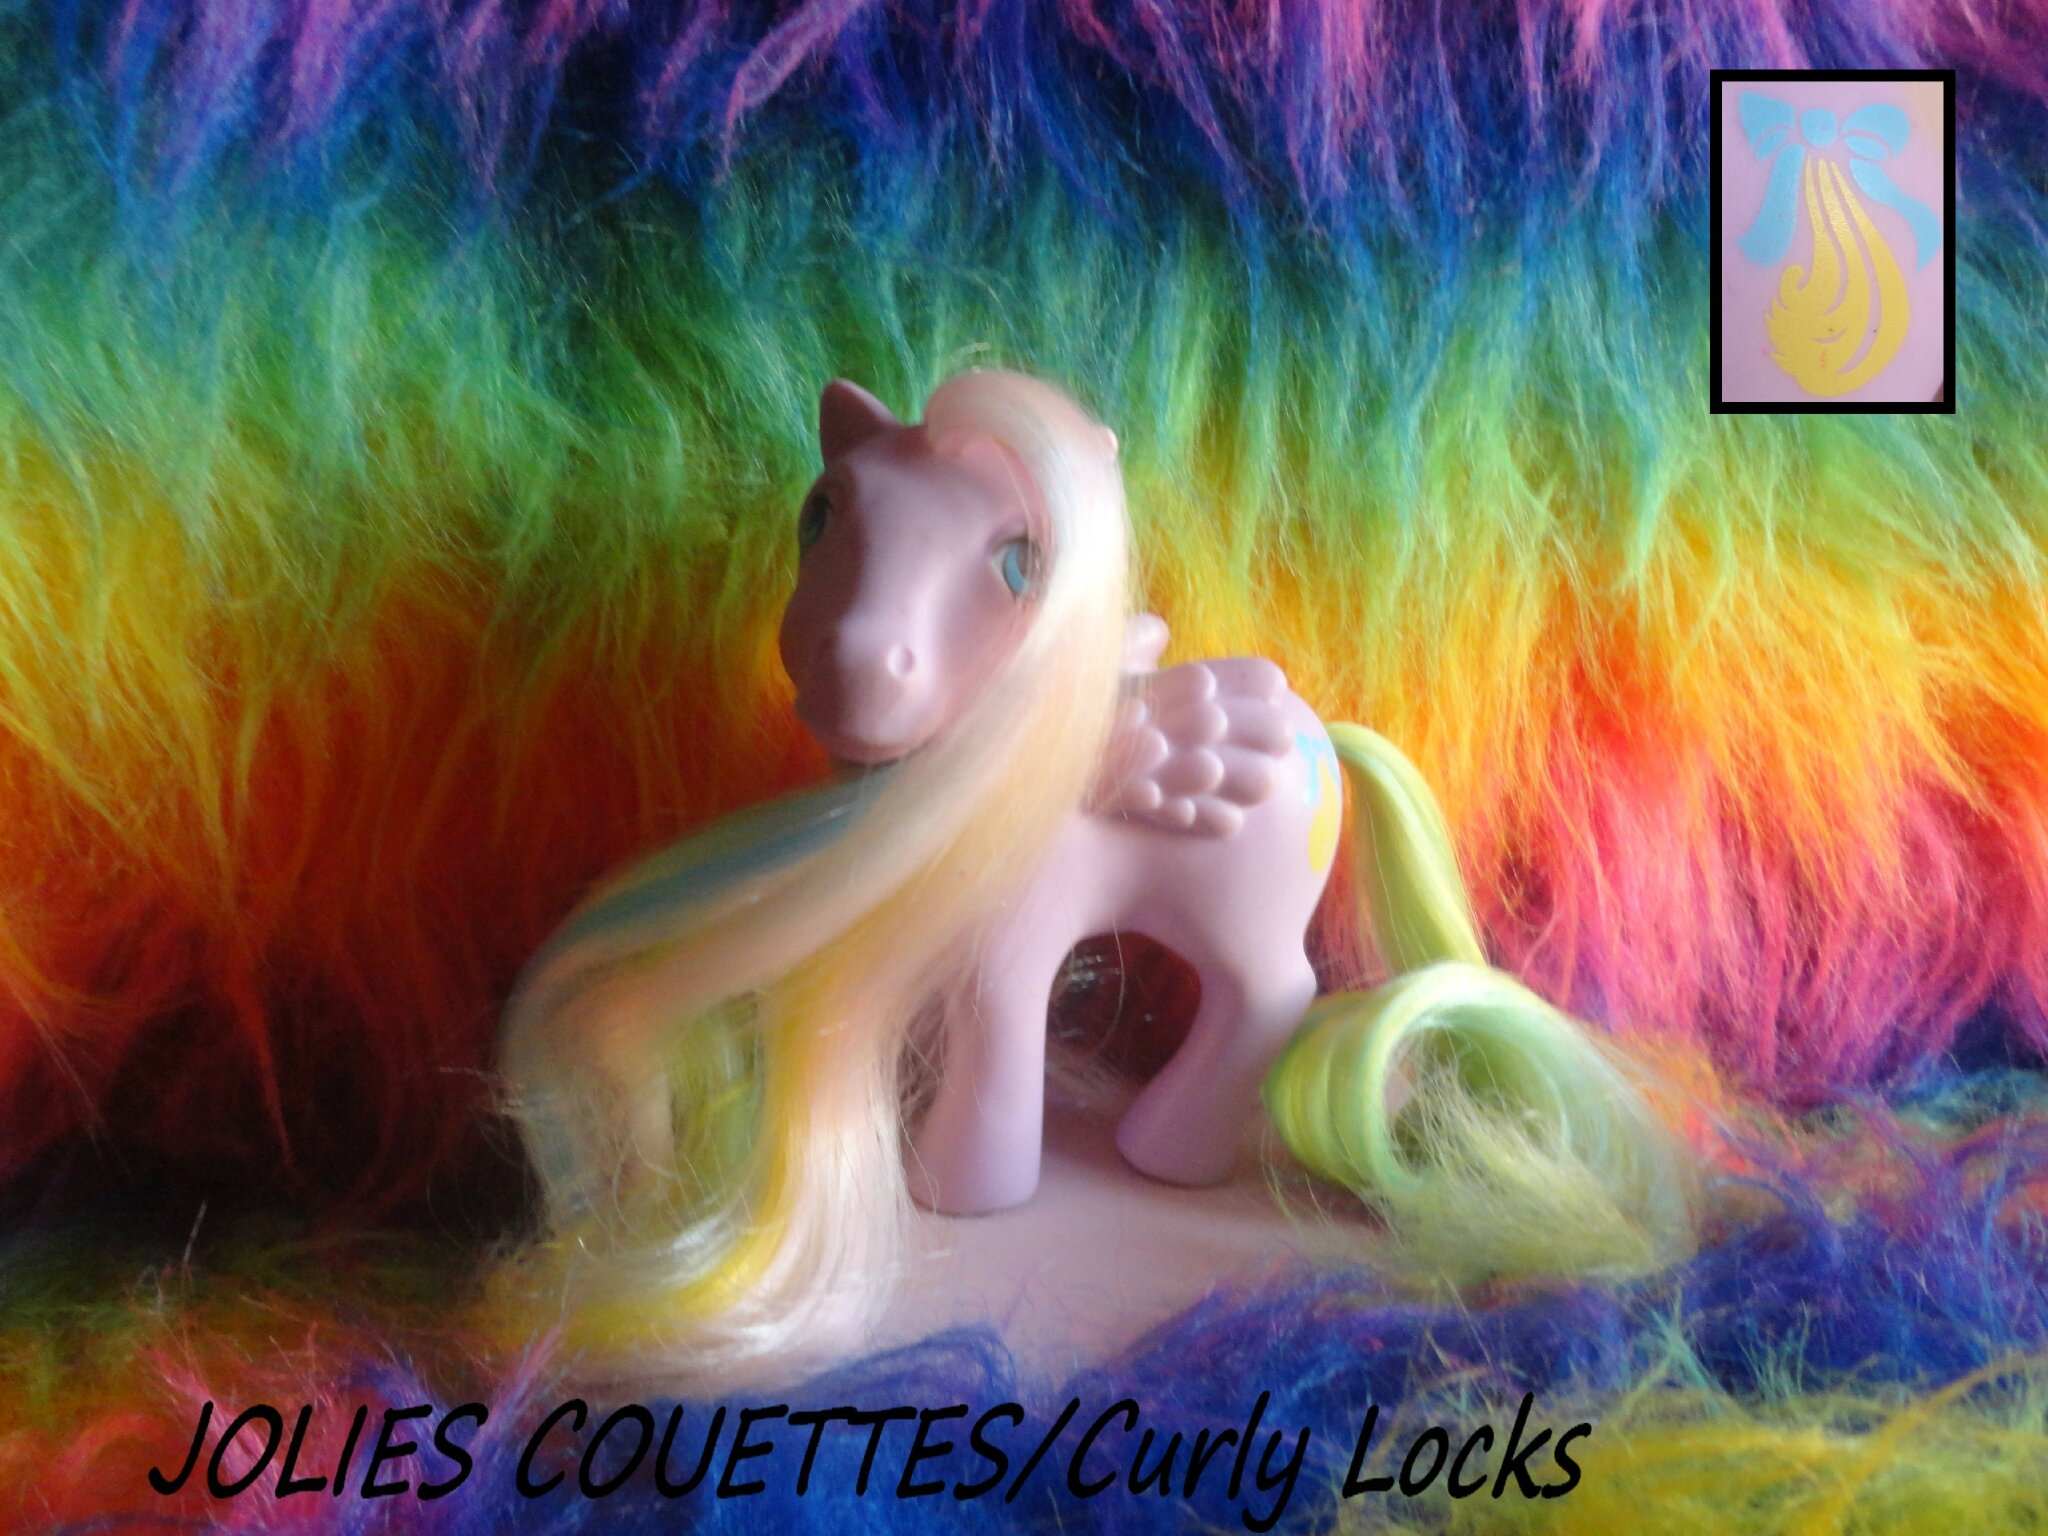 JOLIES COUETTES (Curly Locks)